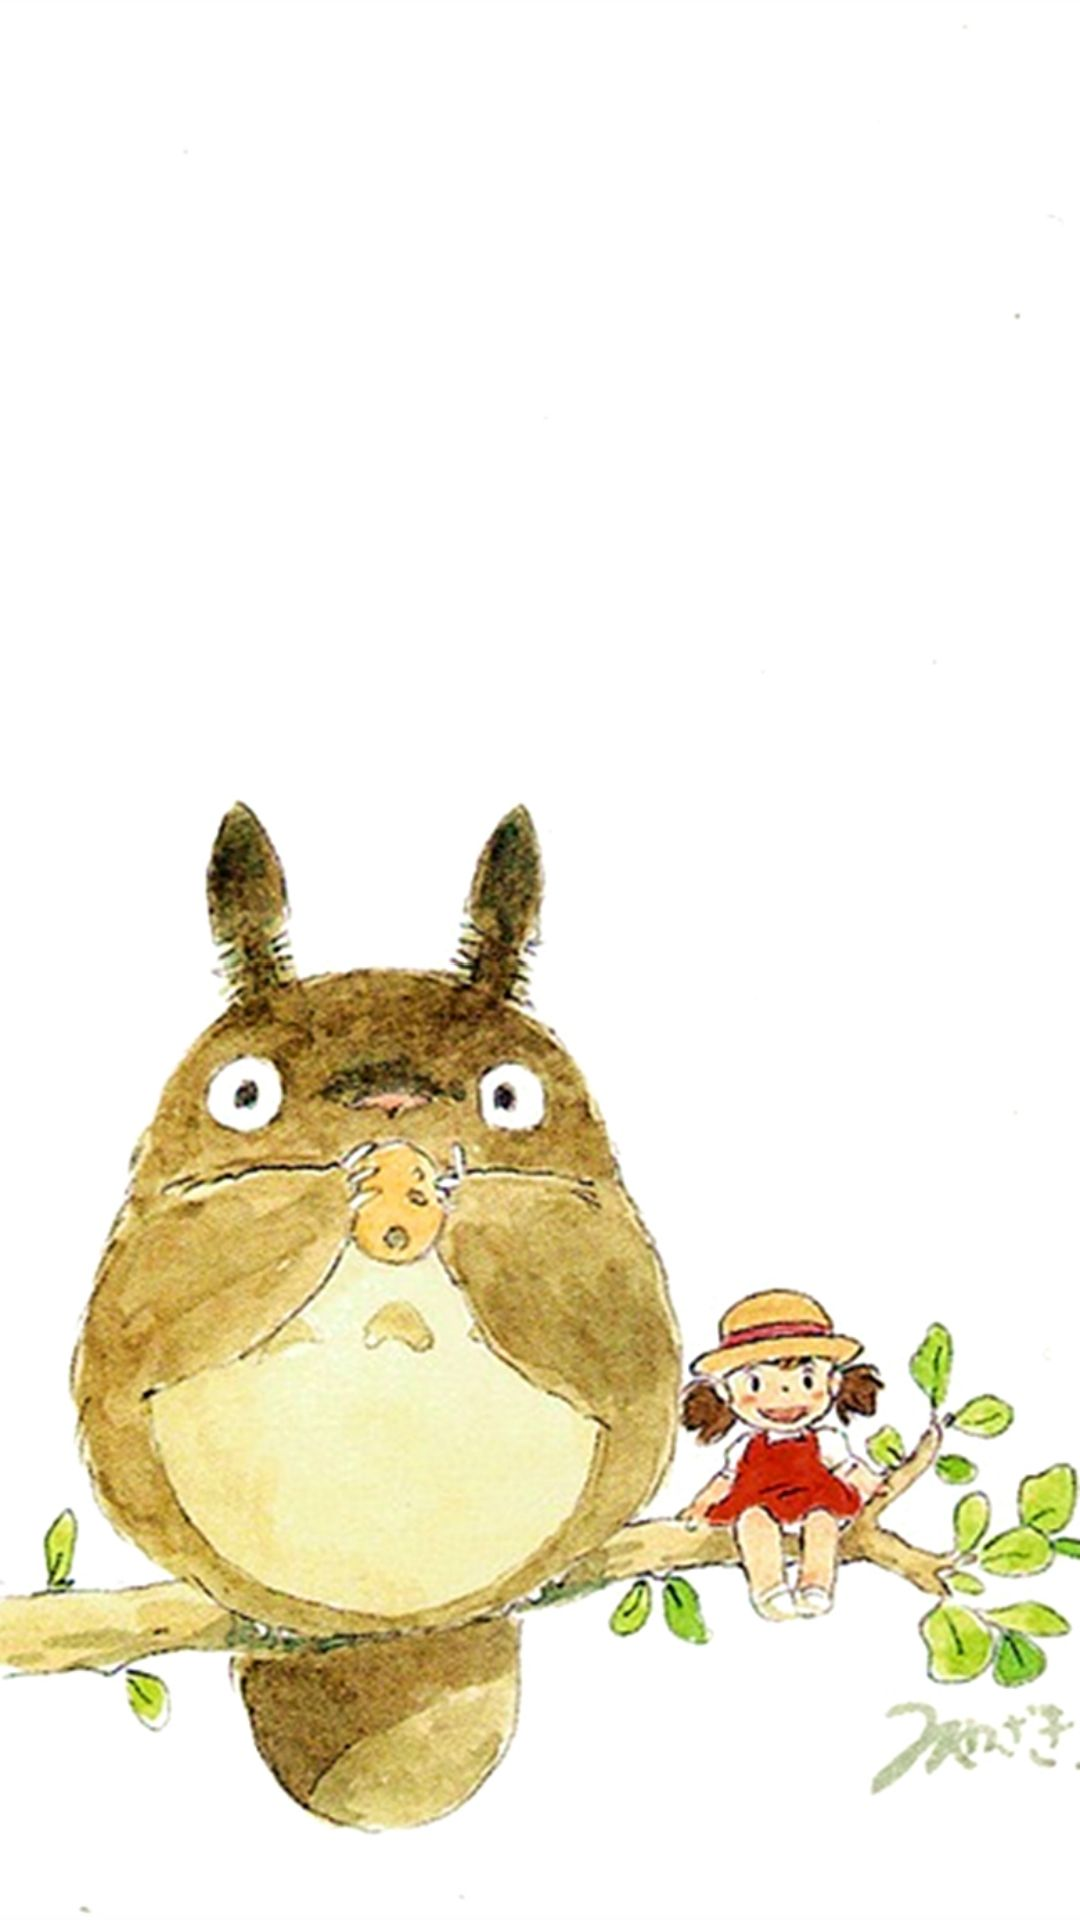 My Neighbor Totoro Cute Girl Branch Art Drawn IPhone 6 Plus Wallpaper